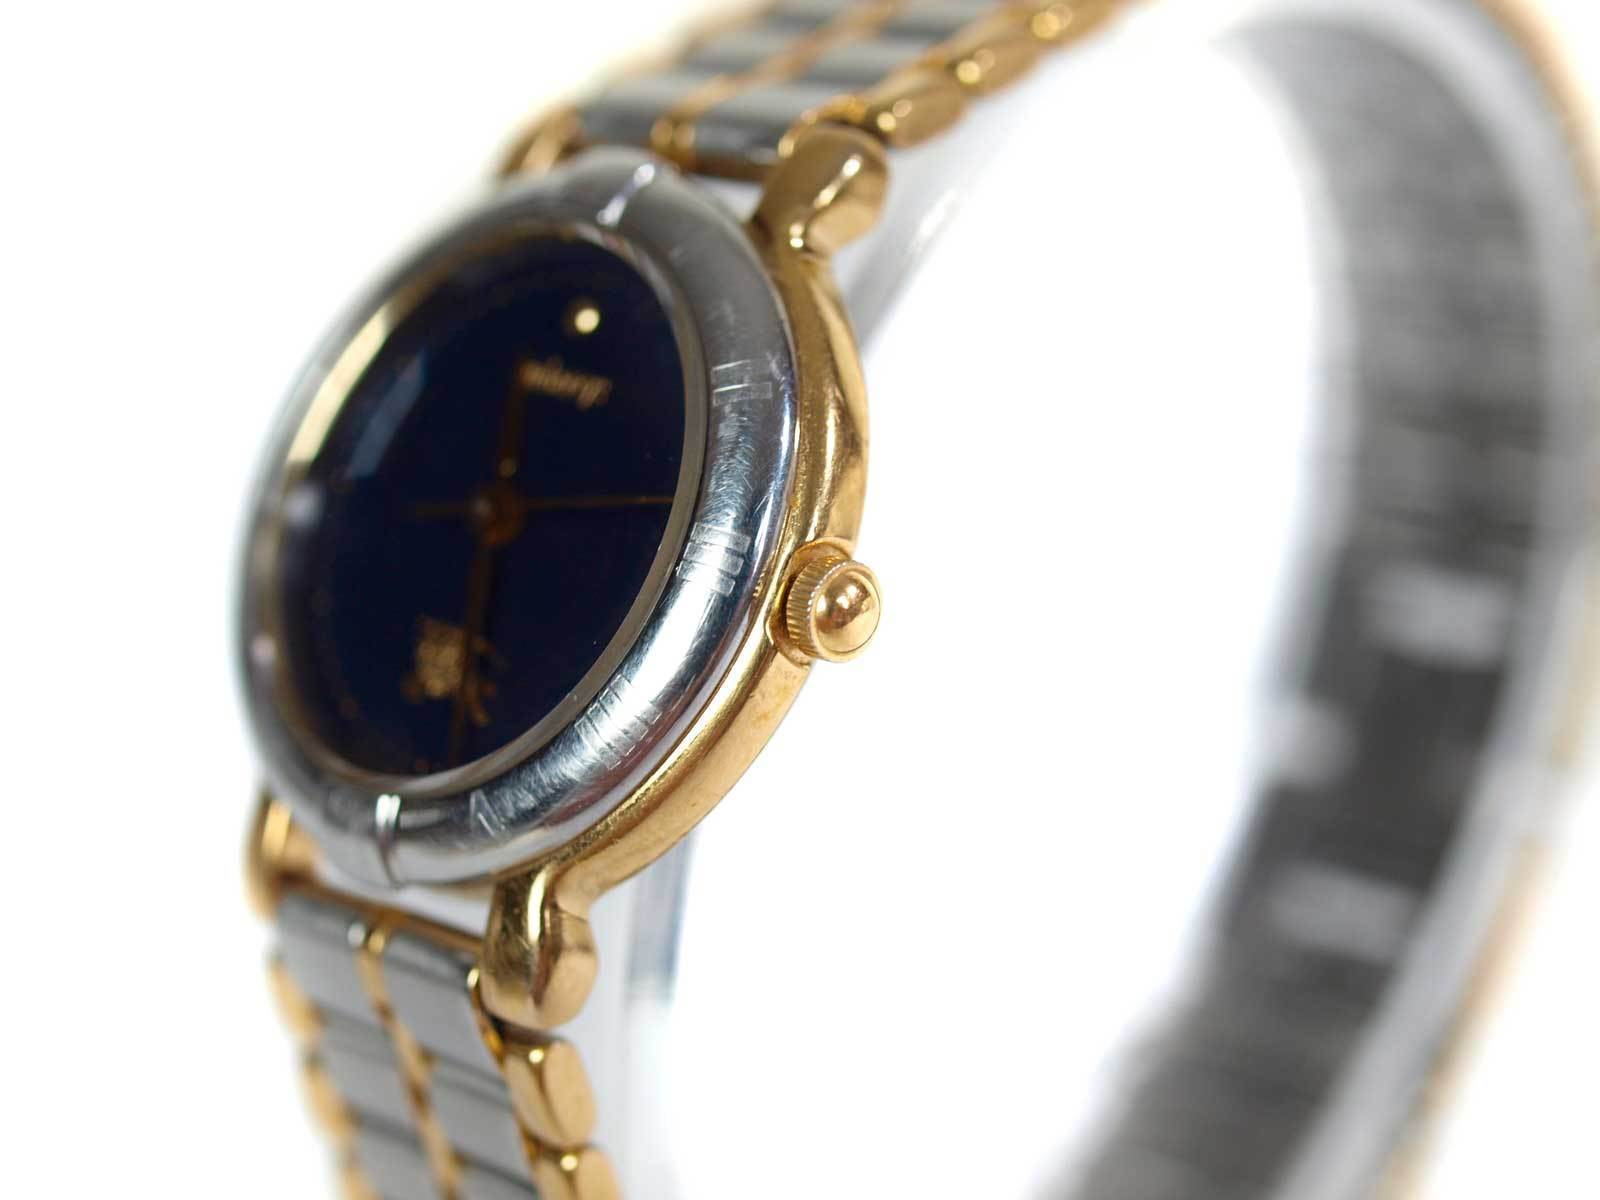 Authentic BURBERRY Navy Blue Dial Stainless Steel Women's Quartz Watch BW7005L